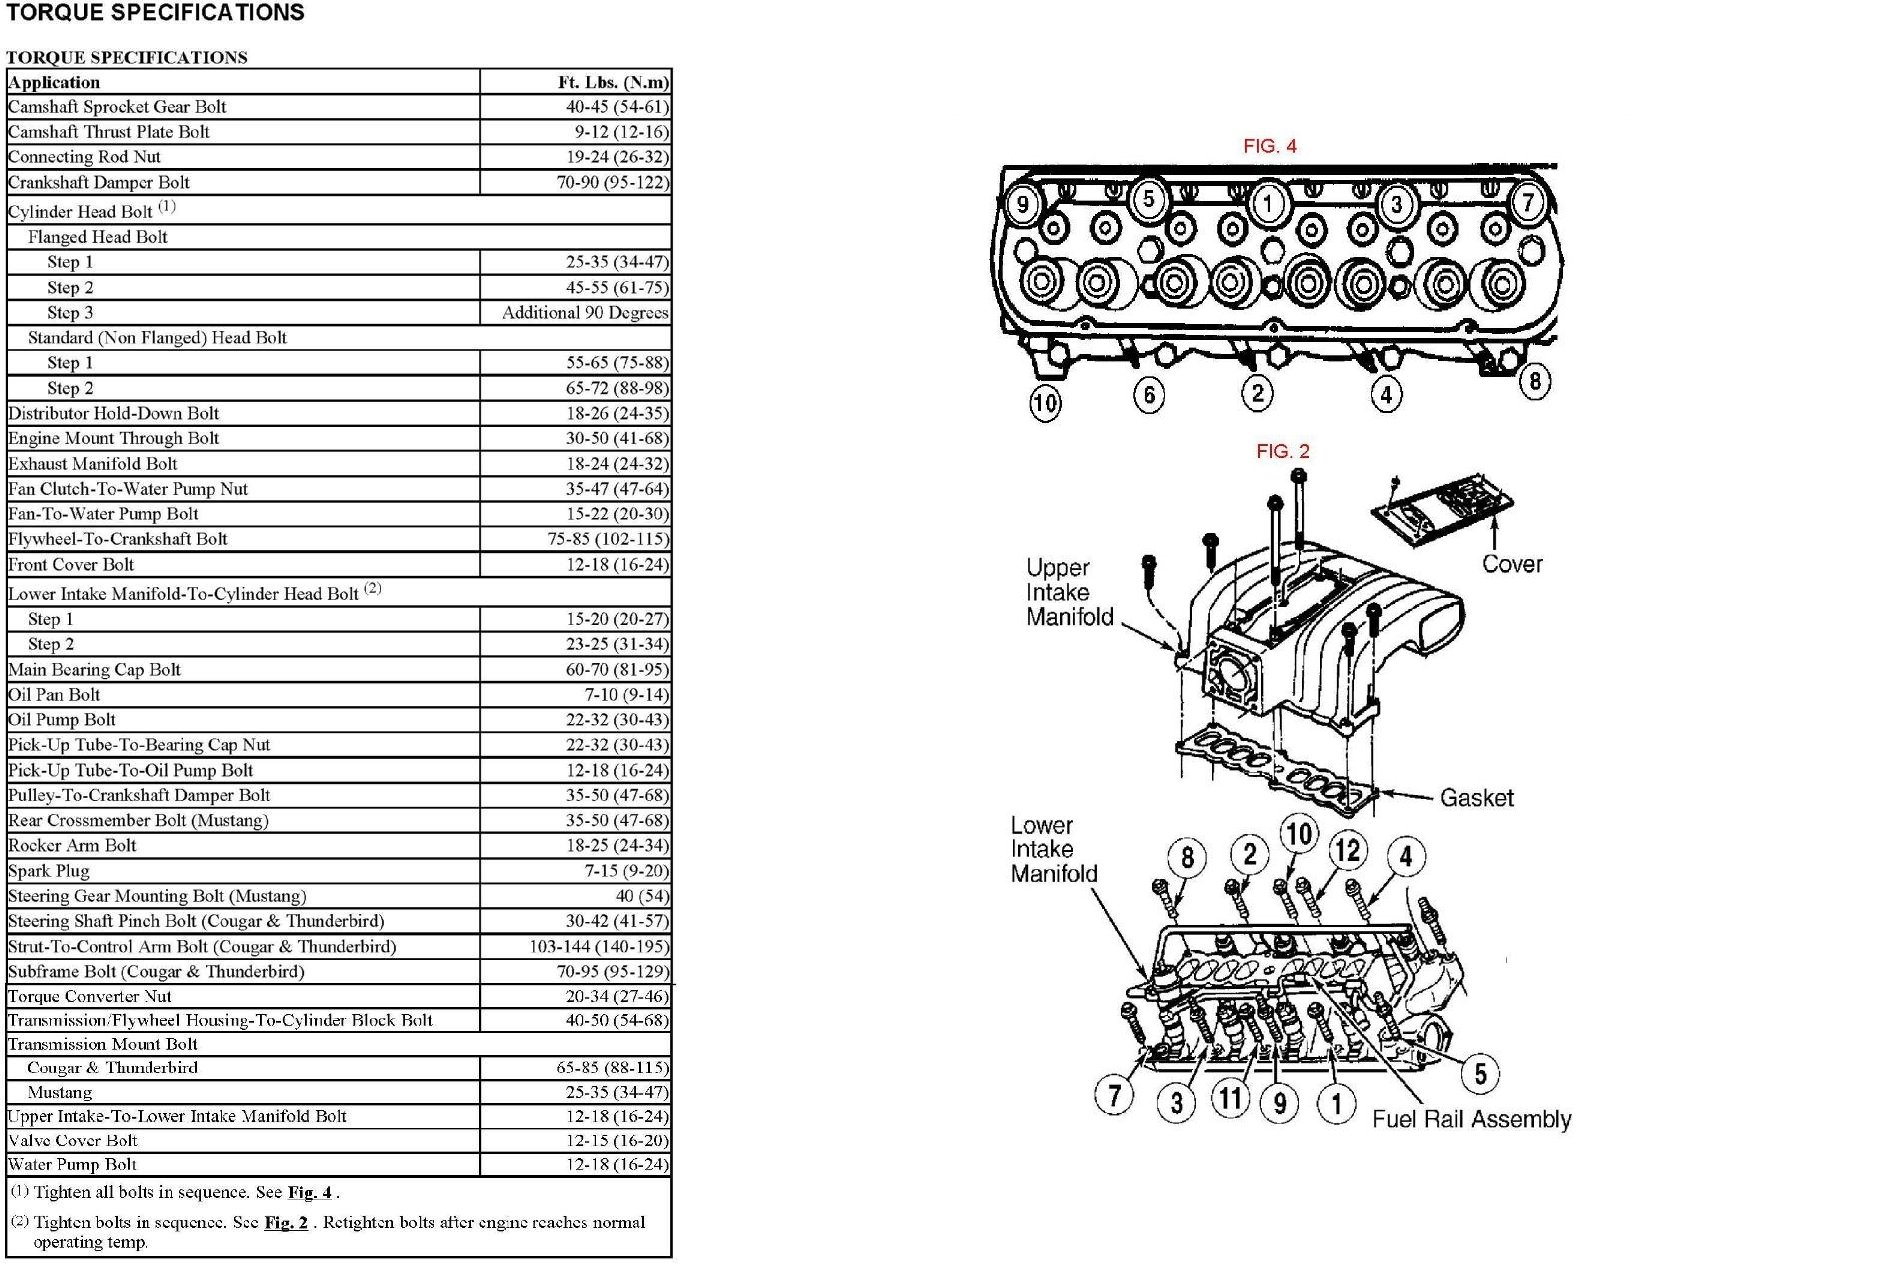 00 Ford Mustang Wiring Diagram